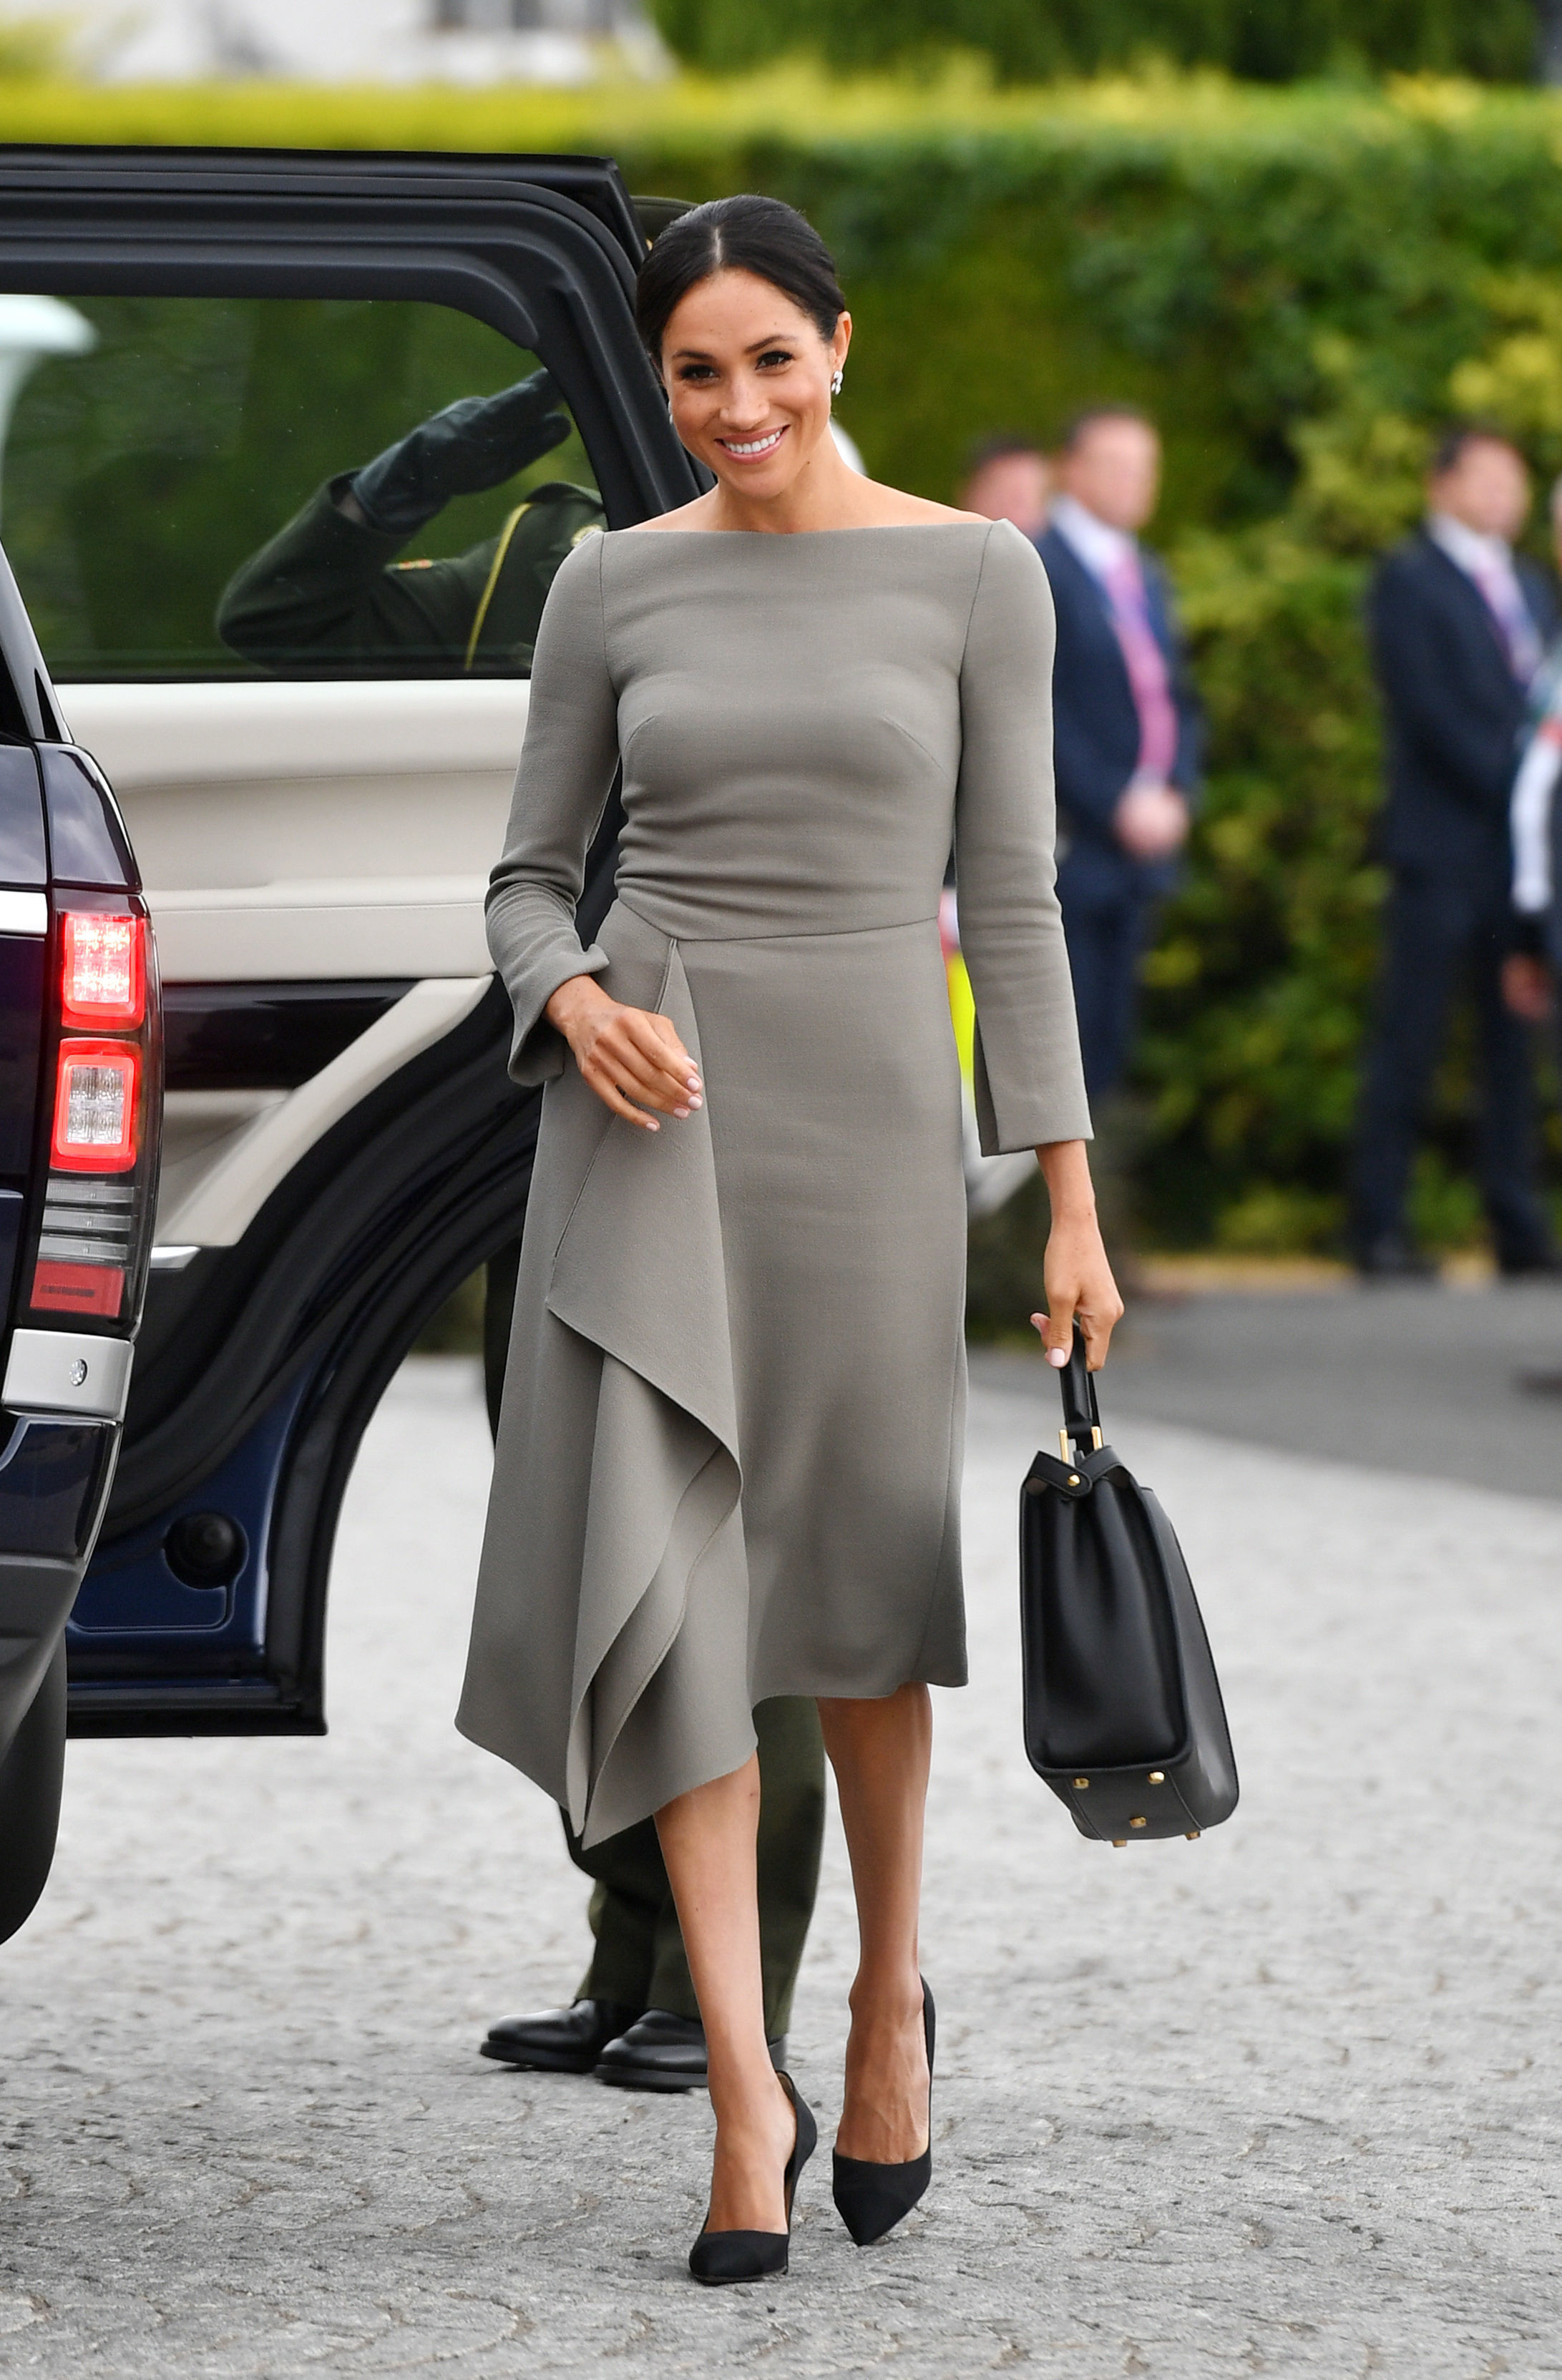 How Tall Are Kate Middleton Meghan Markle And Other Royals In Feet